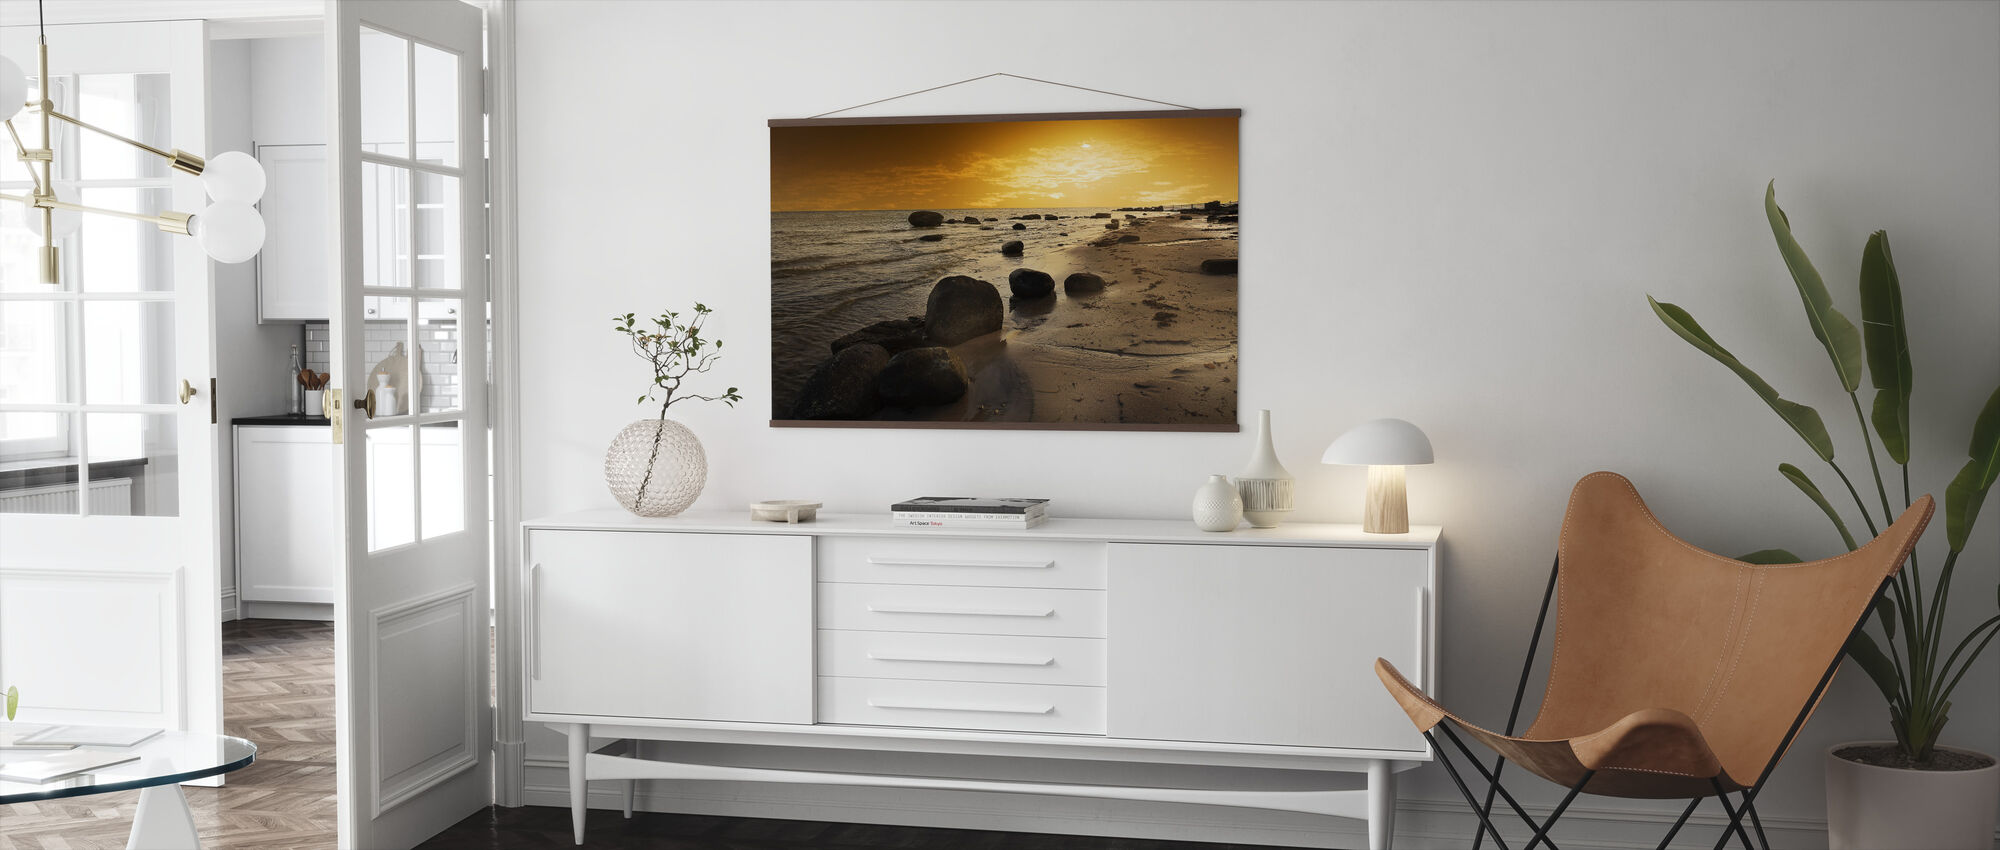 Golden Beach Sunset - Poster - Living Room